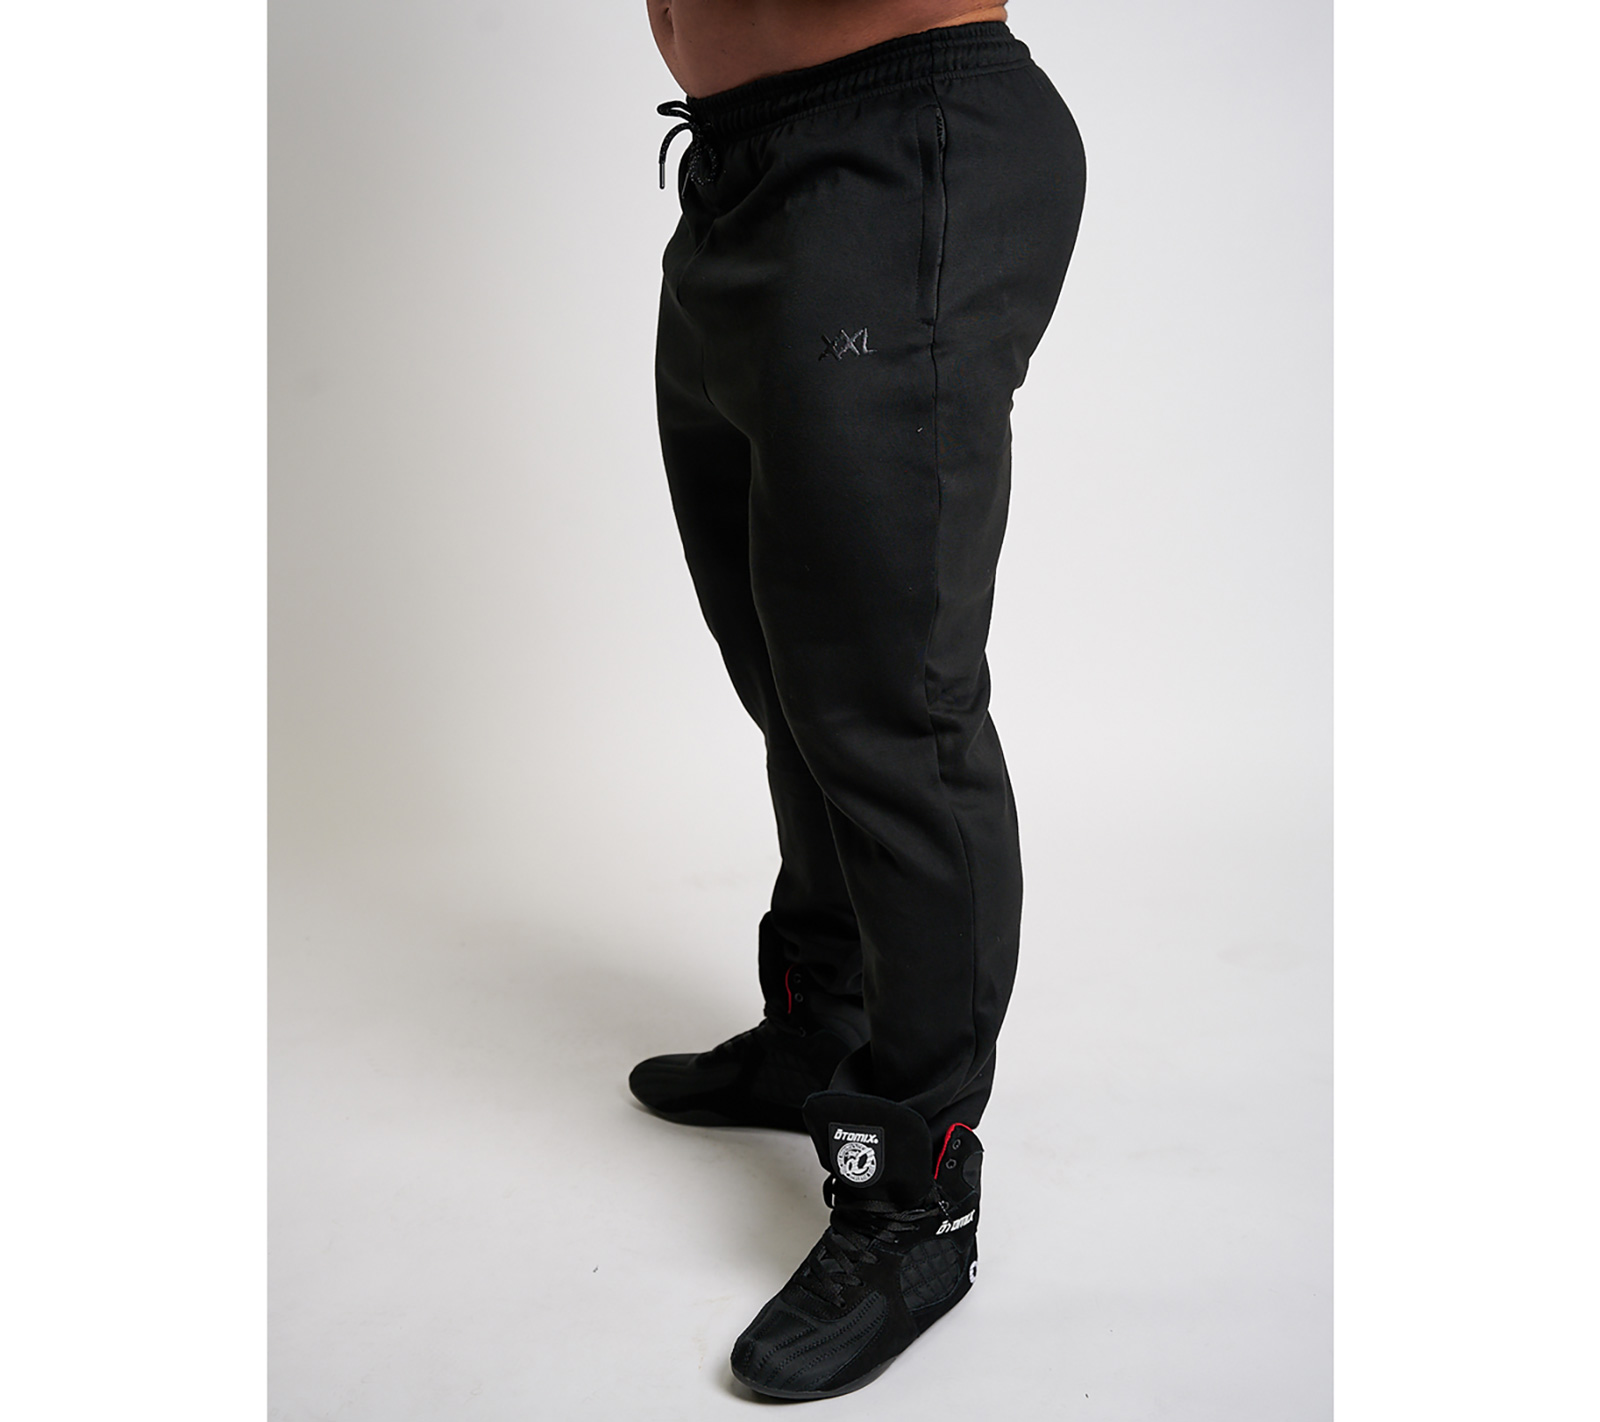 Fitness Broek Heren Zwart XXL Sportswear Bigger is Better Jogger